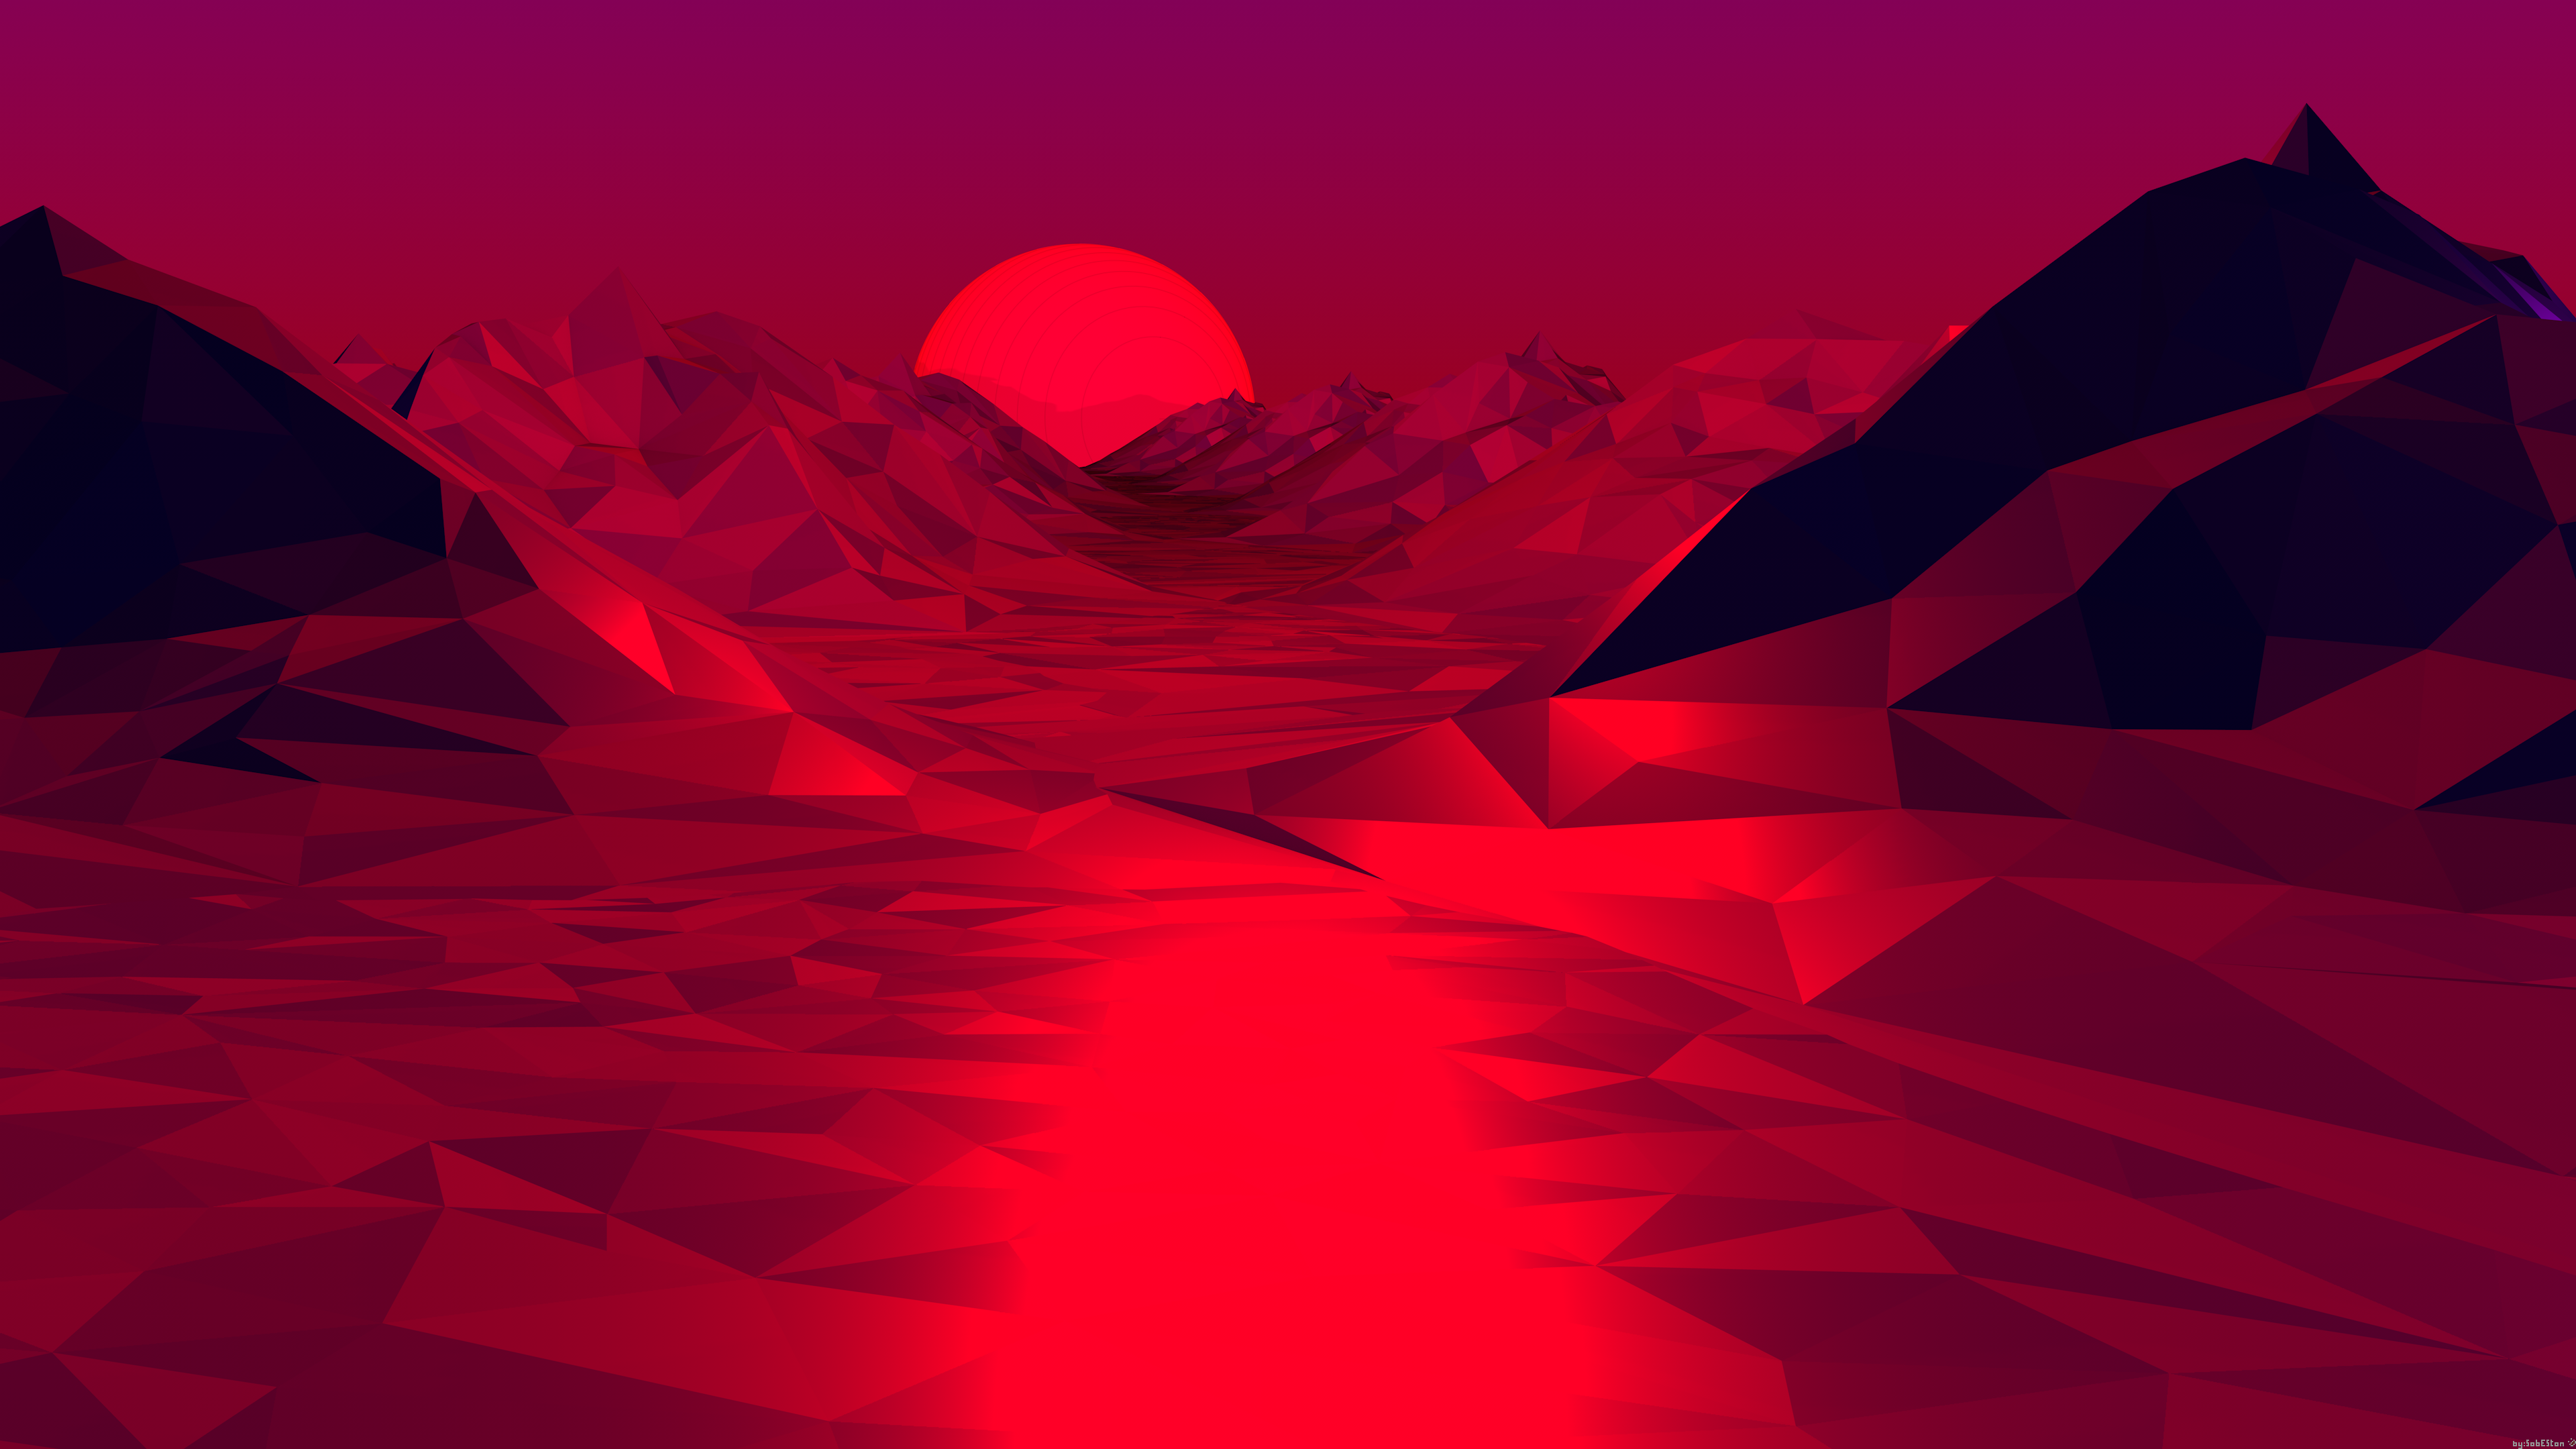 Abstract Vaporwave Style Landscape Oc 3840x2160 4k Uhd Vaporwave Wallpaper Aesthetic Desktop Wallpaper Red Aesthetic